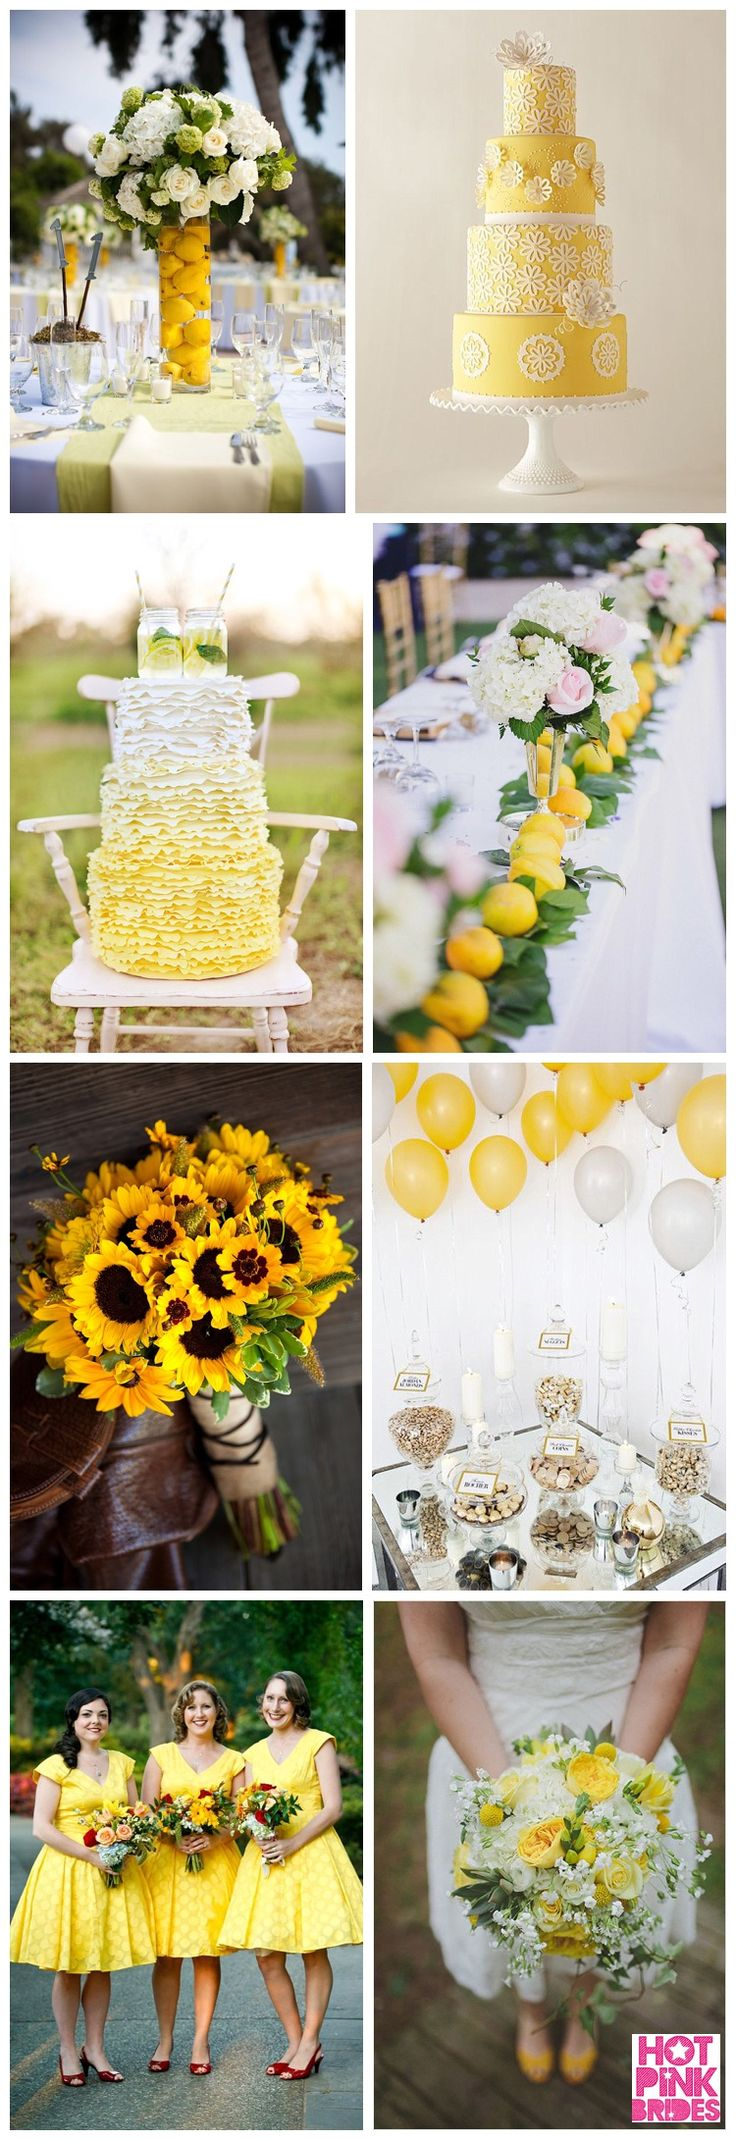 Yellow Wedding Inspiration | Hot Pink Brides | Modern Unique Glamorous Brides Guide